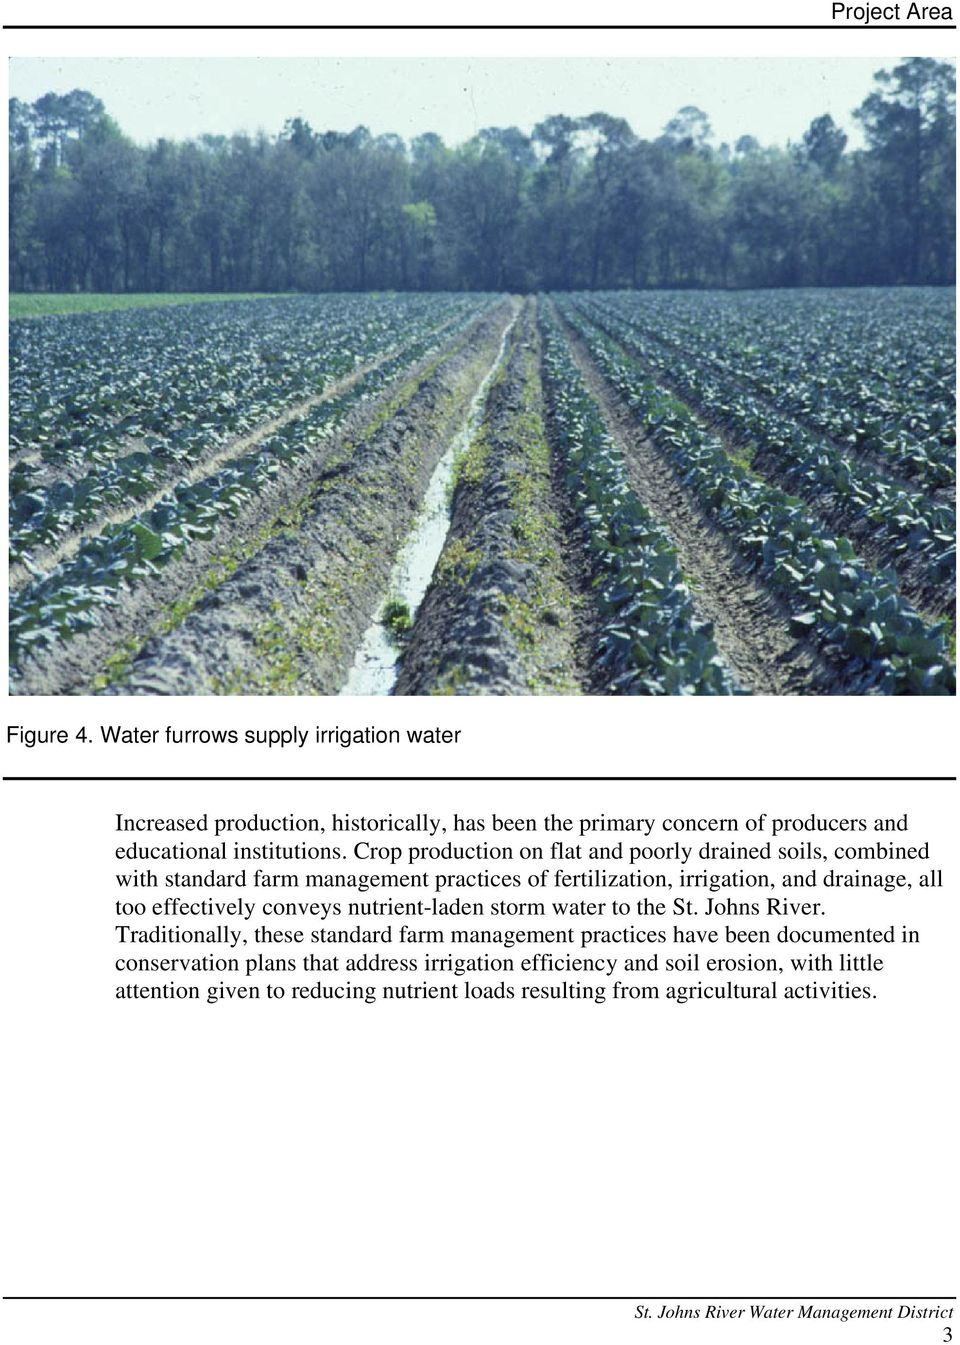 Crop production on flat and poorly drained soils, combined with standard farm management practices of fertilization, irrigation, and drainage, all too